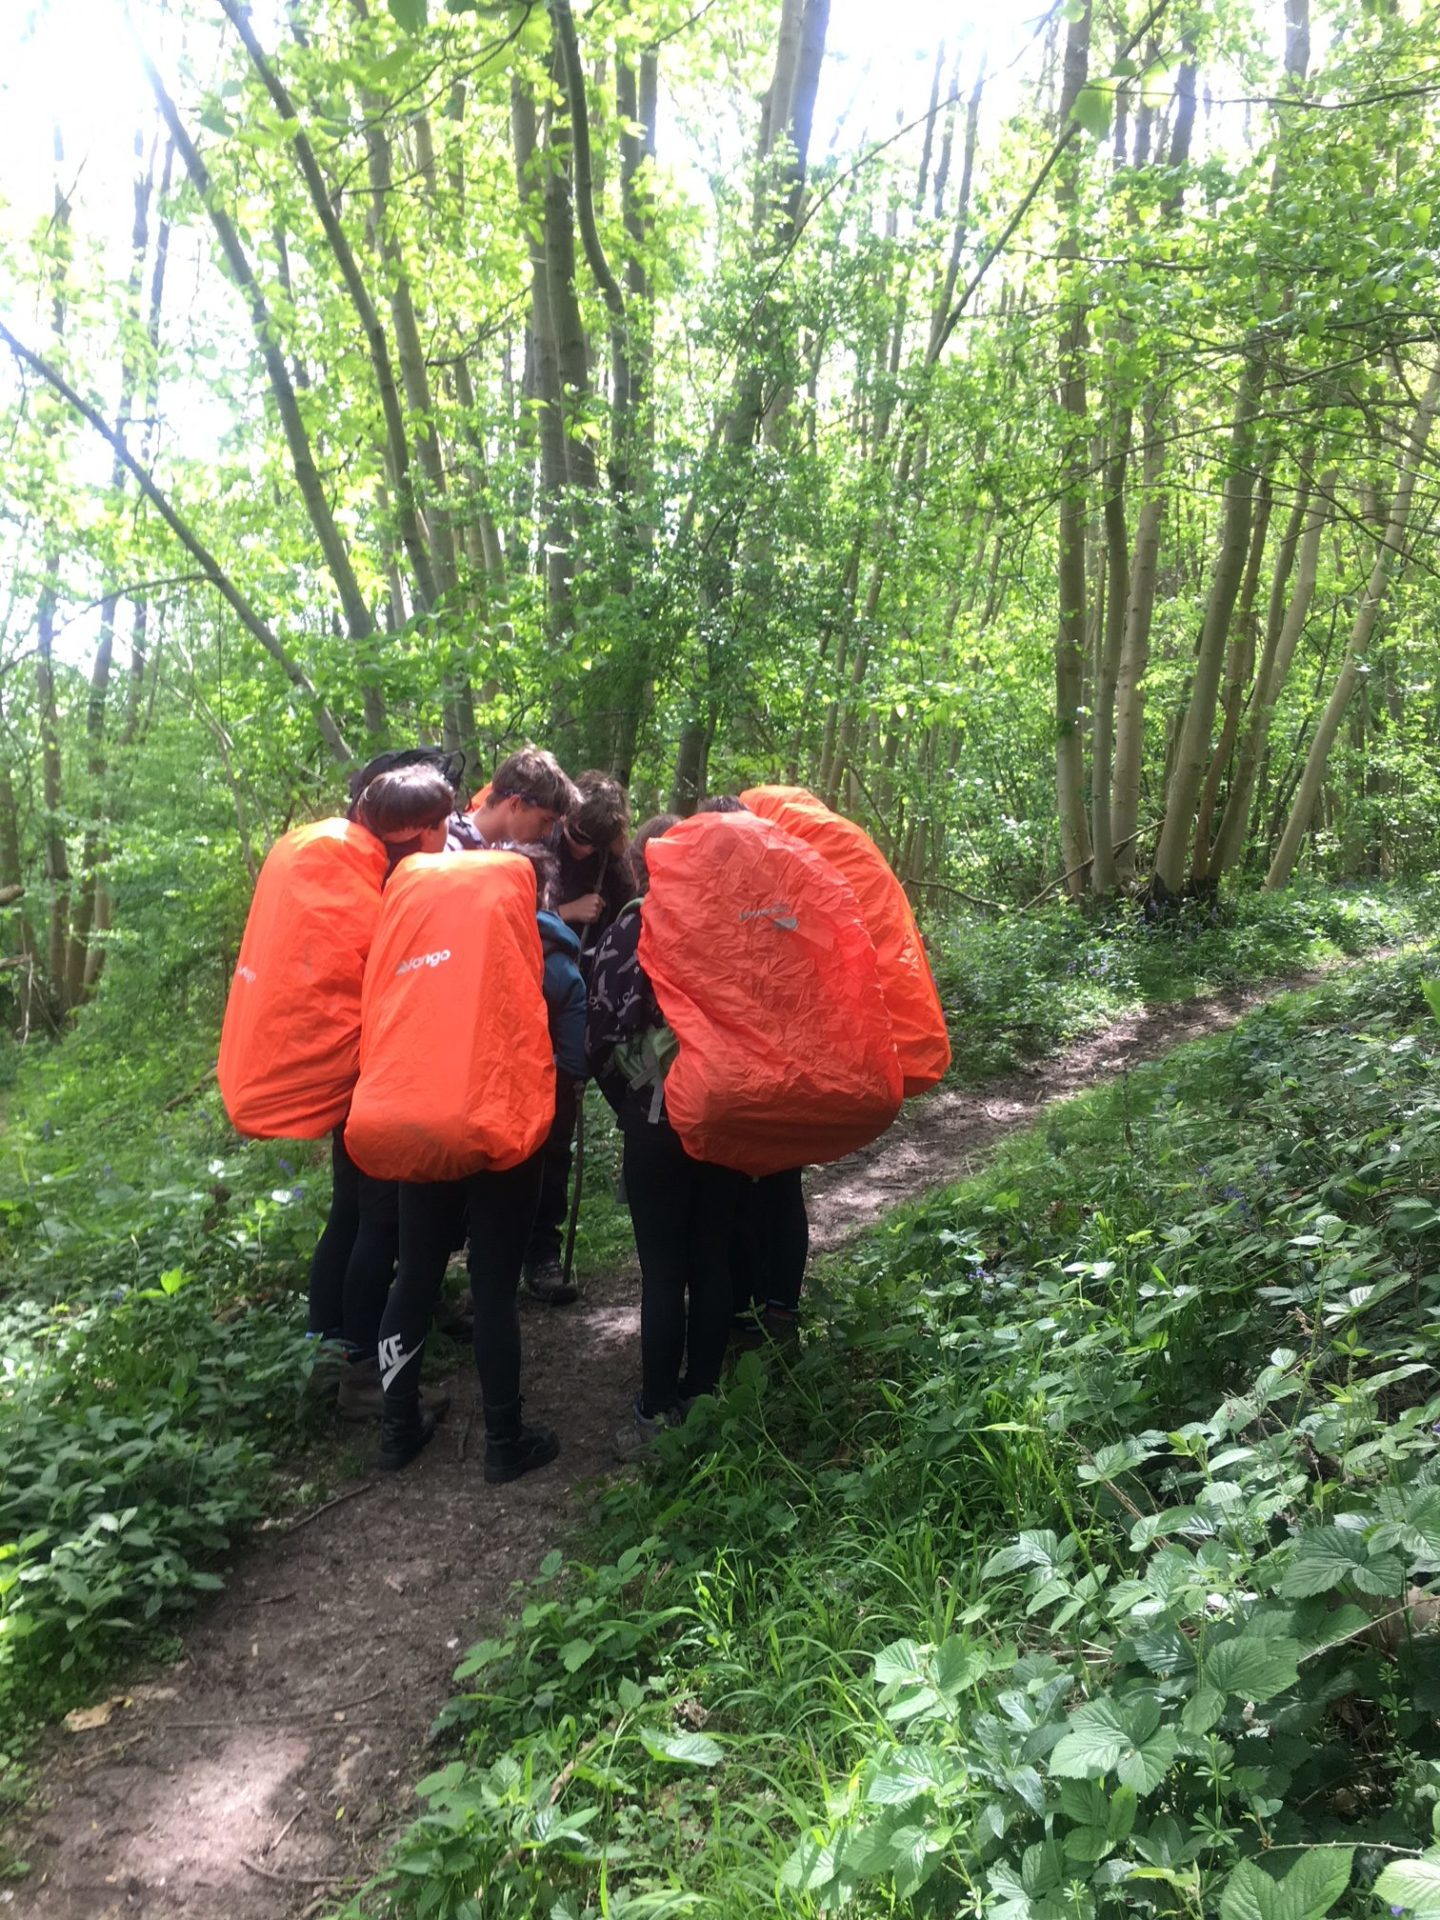 Bright Expeditions DofE Approved Activities Provider (AAP)